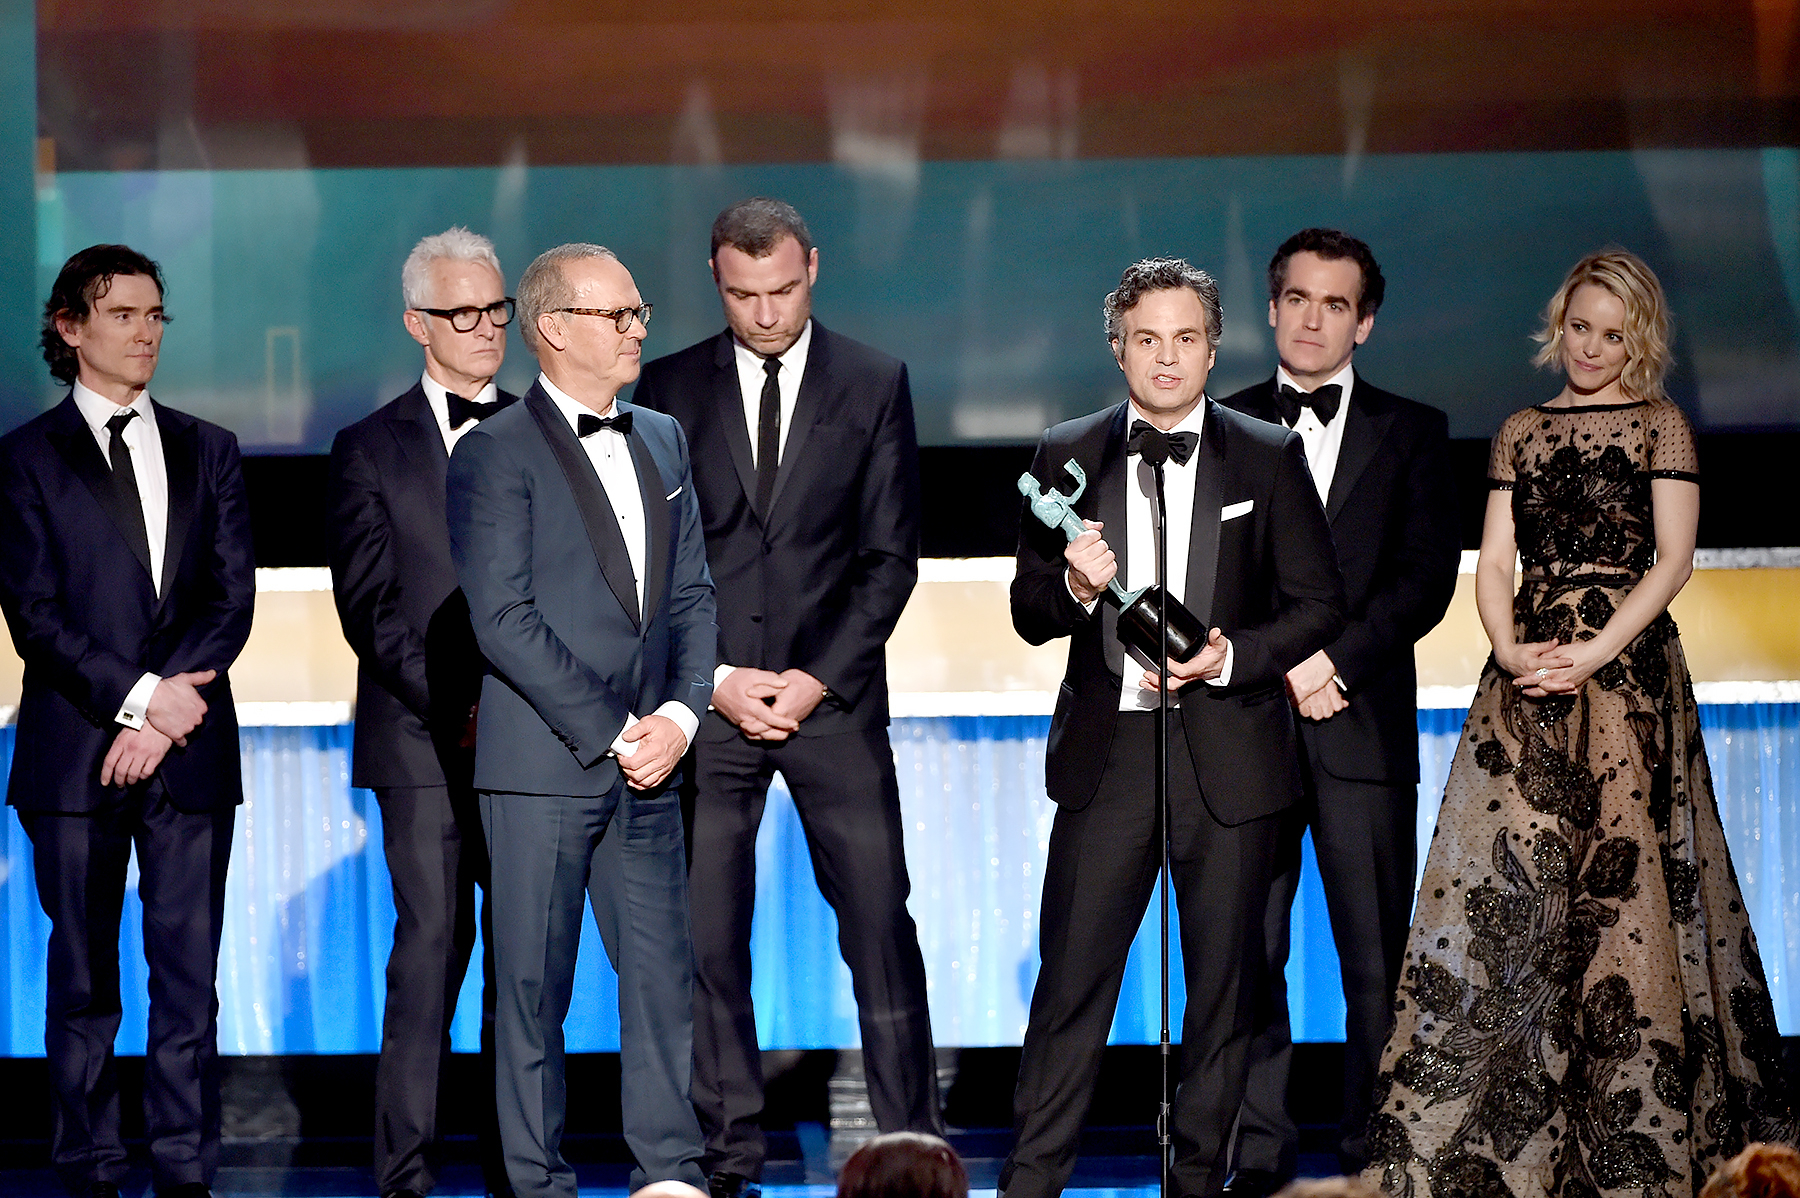 Billy Crudup, John Slattery, Michael Keaton, Liev Schreiber, Mark Ruffalo, Brian d'Arcy James and Rachel McAdams accept the Cast in a Motion Picture award for 'Spotlight' onstage during The 22nd Annual Screen Actors Guild Awards.